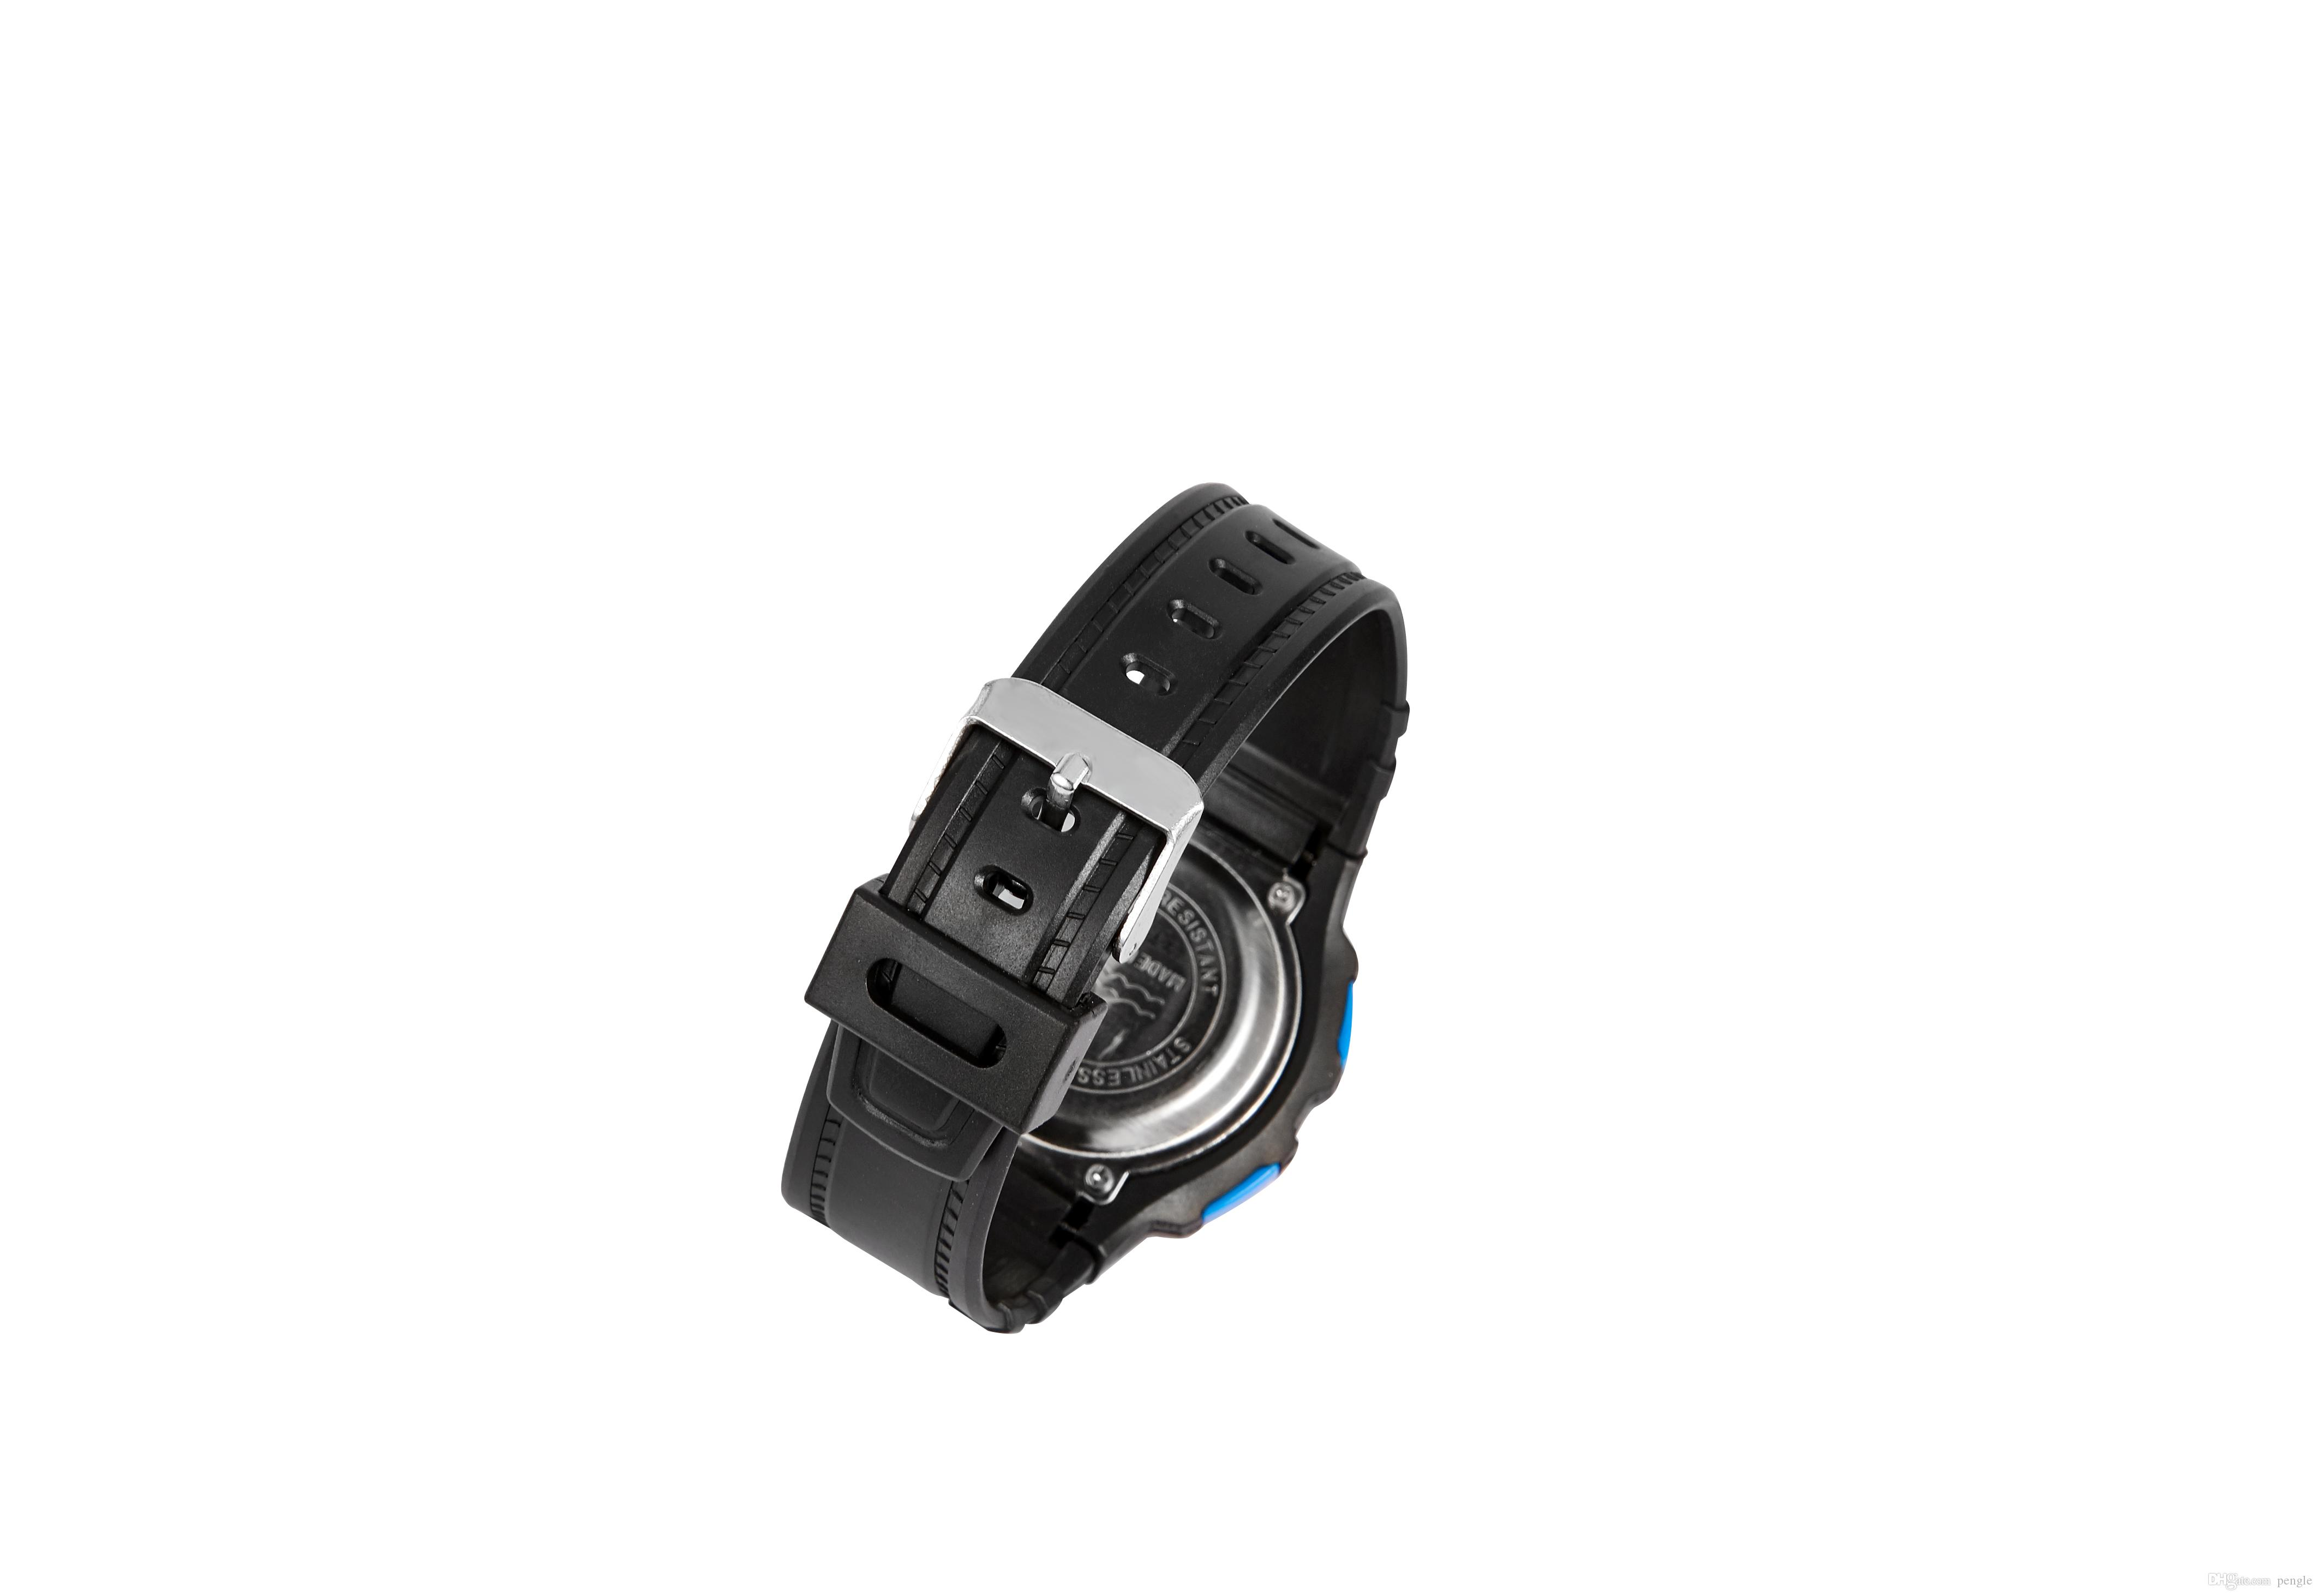 Hot Sale Fashion Watches 30m Waterproof Watches Digital Watches Multifunction Wristwatch For Men Gift